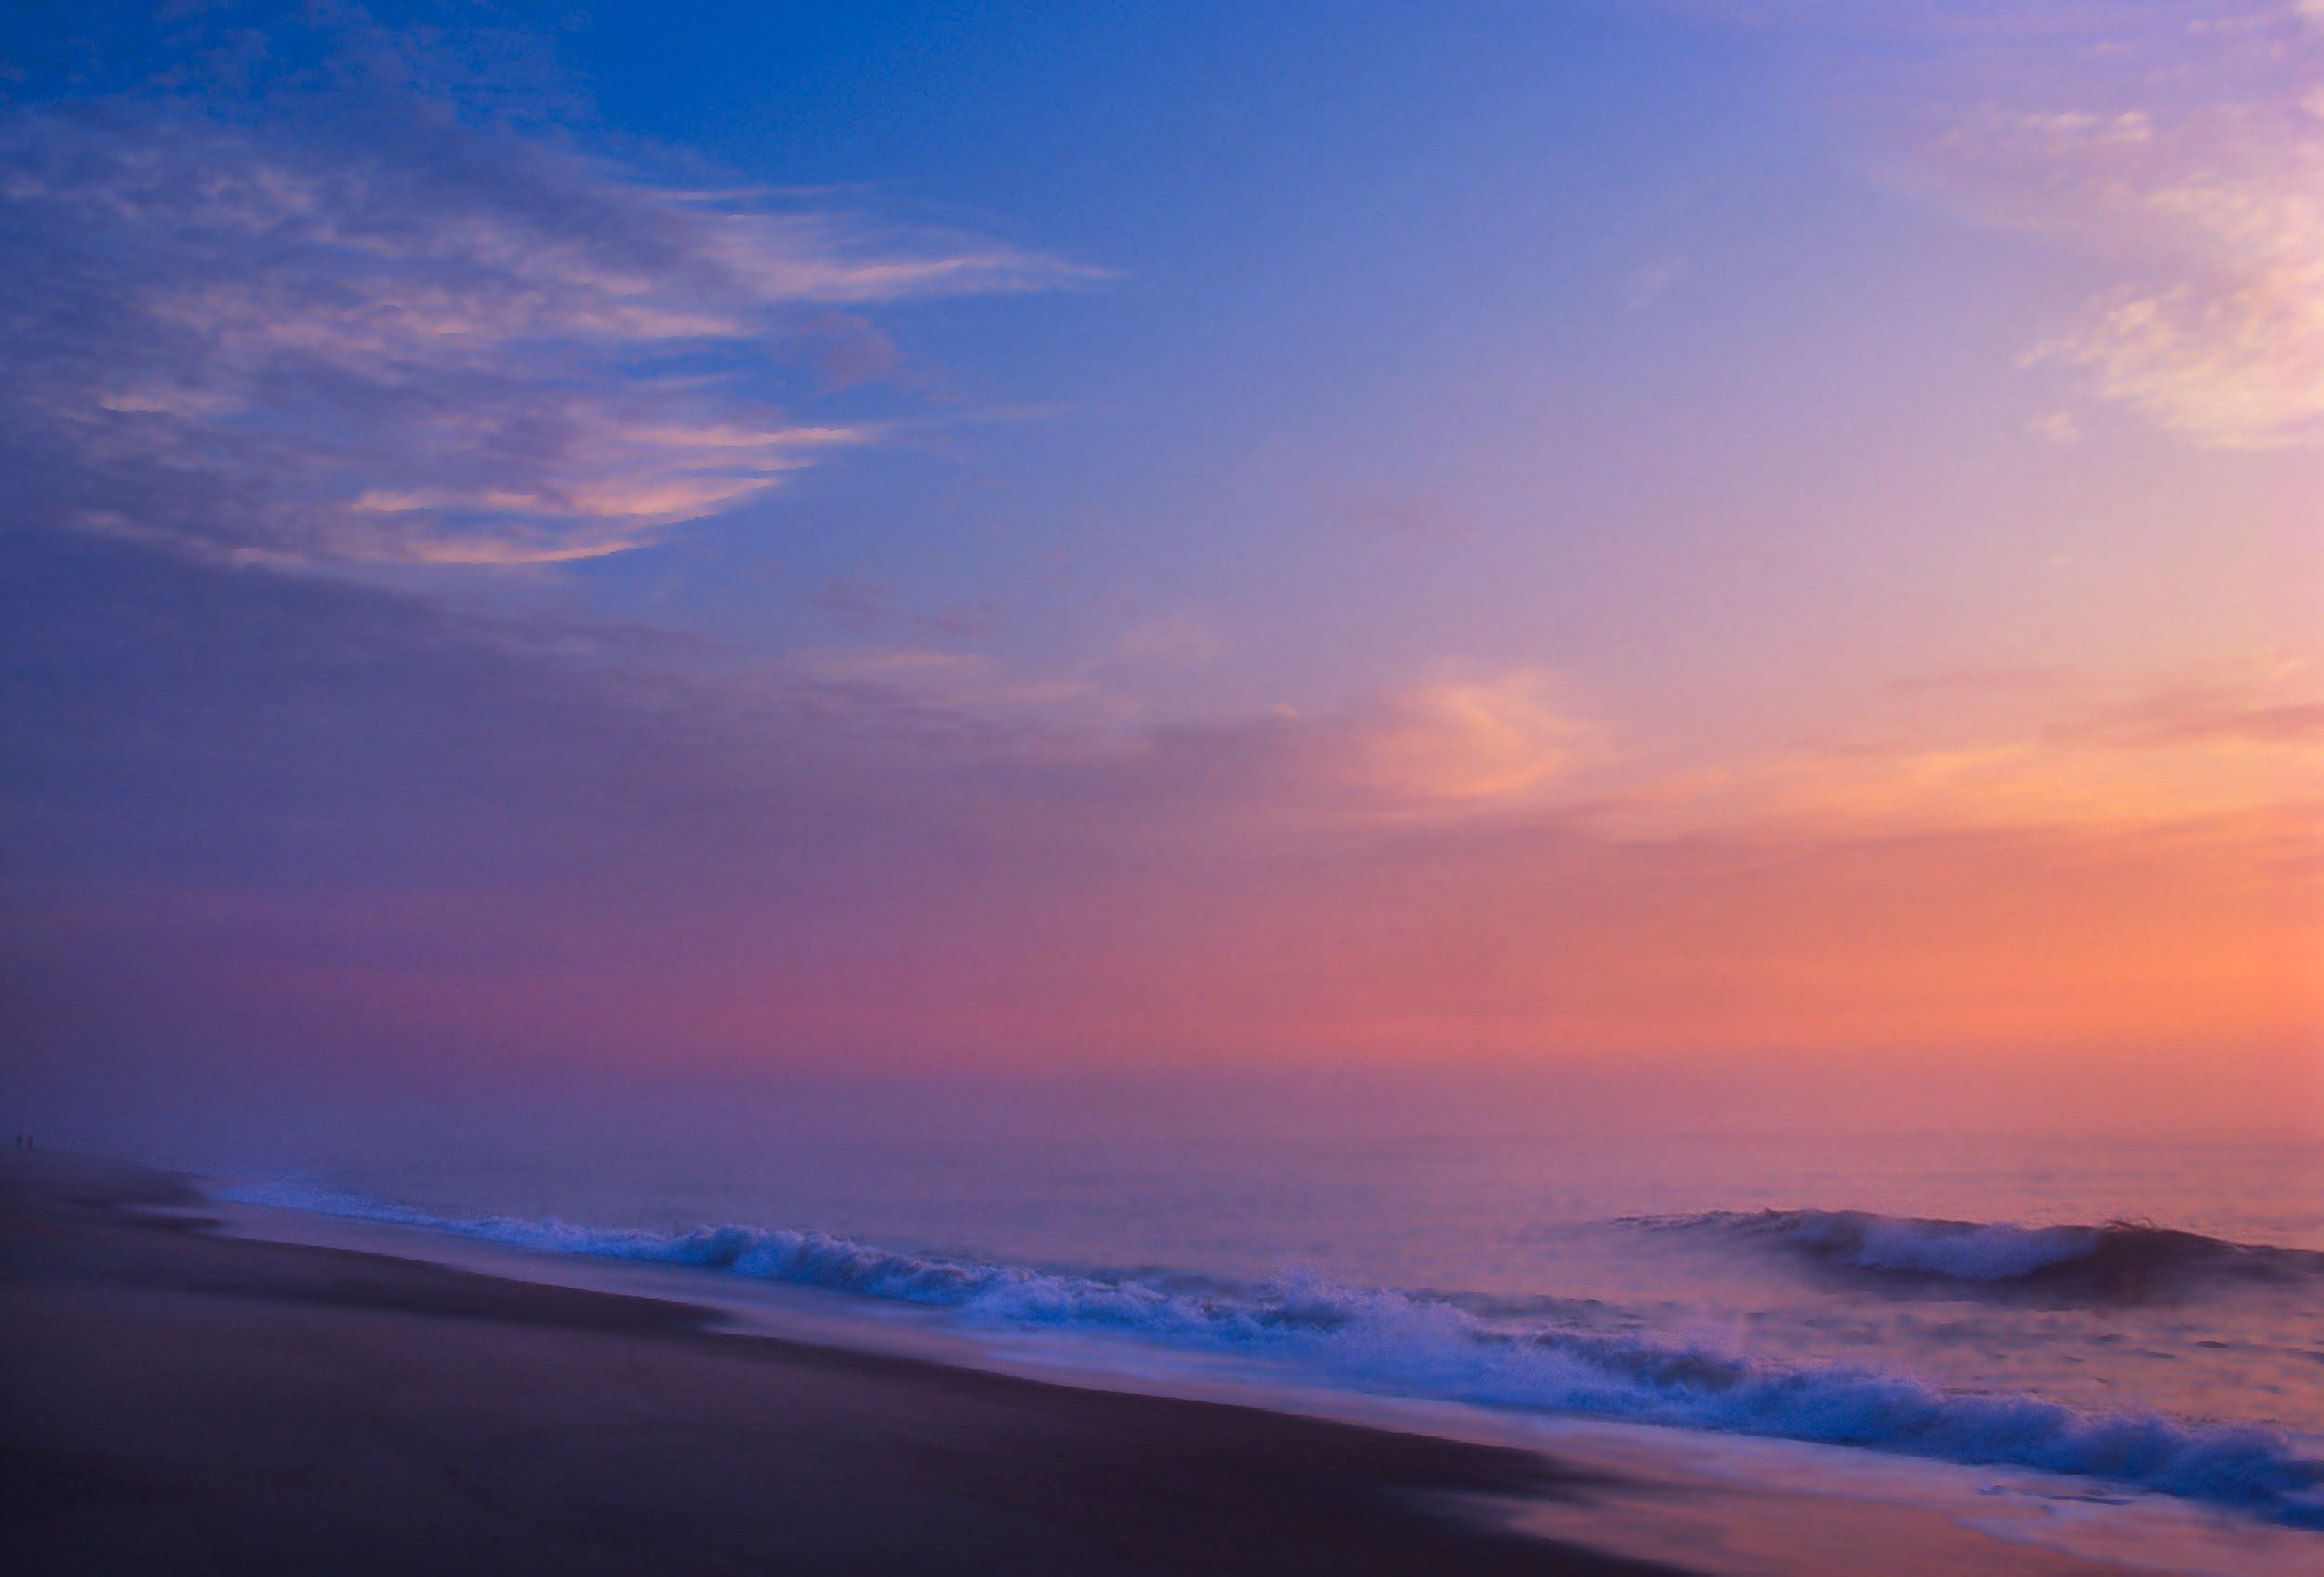 Sunrise at Nauset Beach